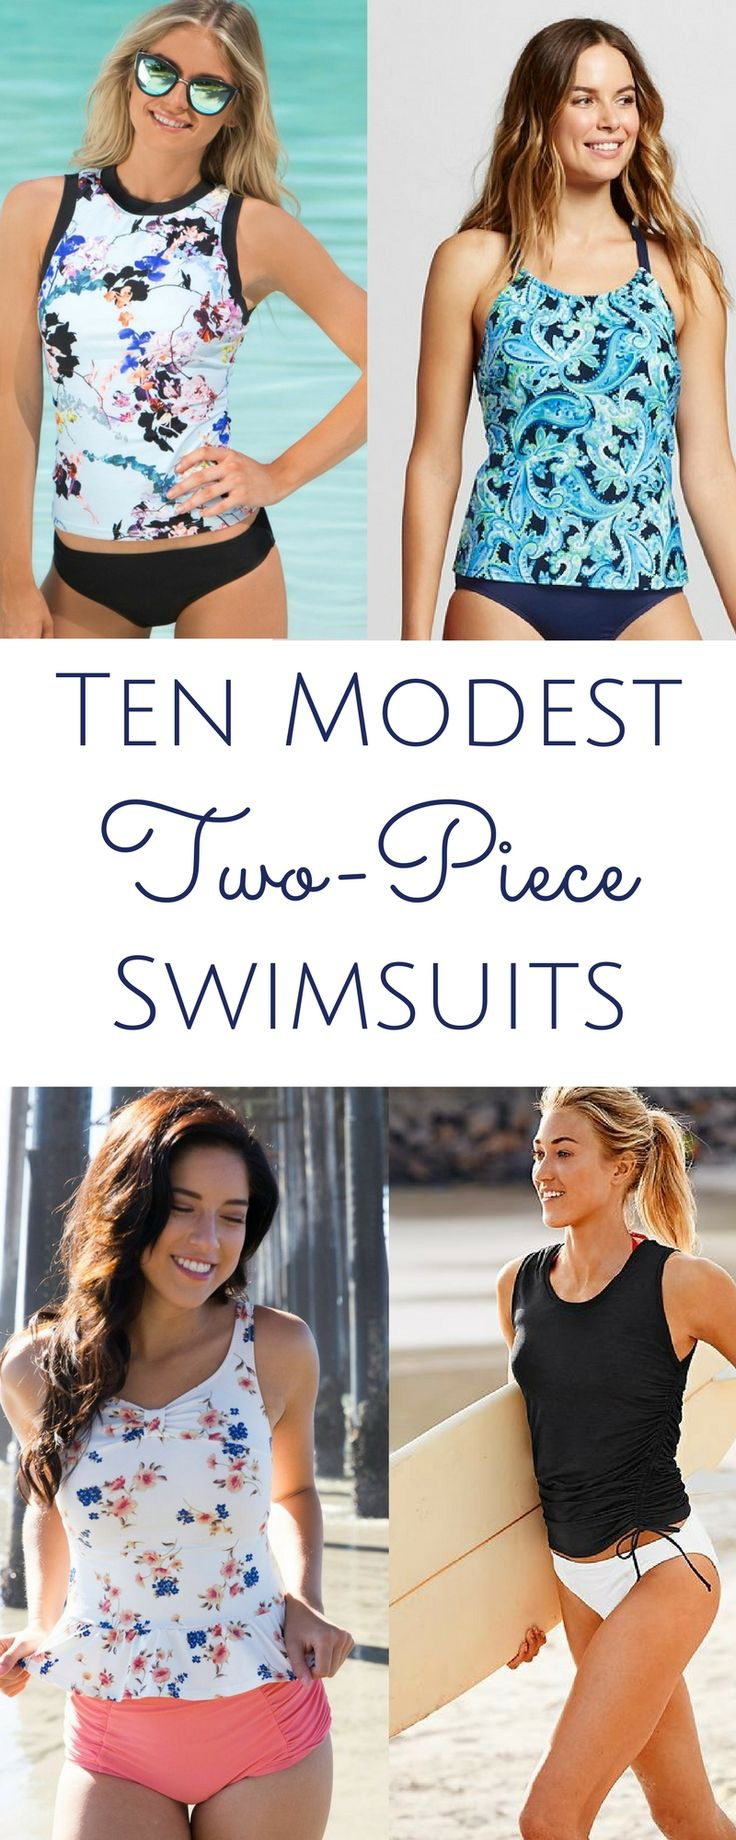 The functionality of a bikini with the coverage of a one-piece. Modest two-piece swimsuits!